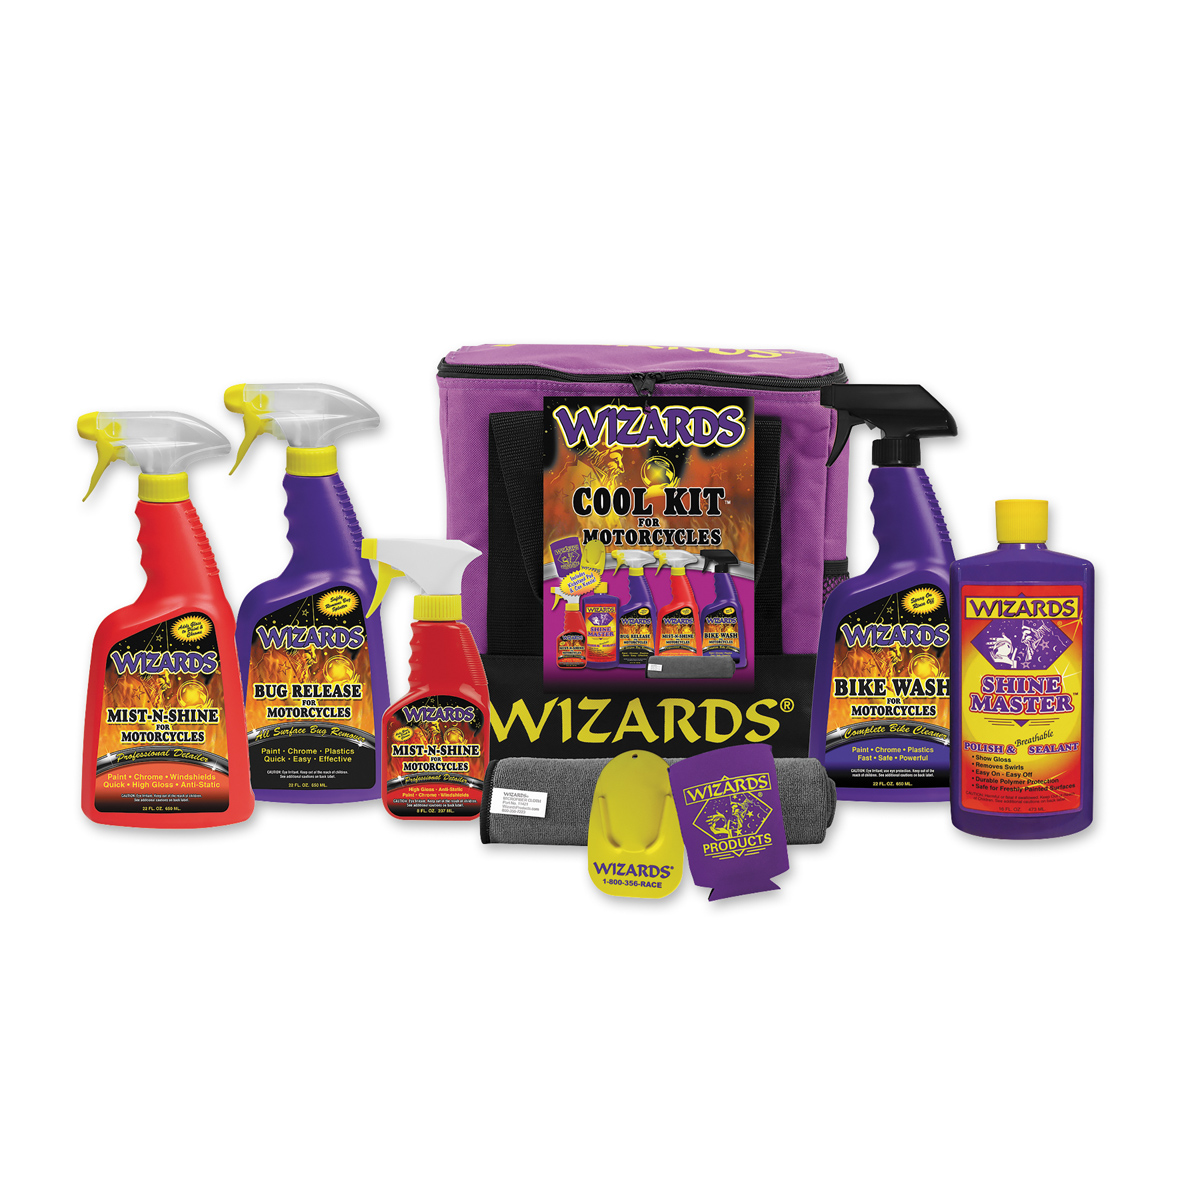 Wizards Cool Kit for Motorcycles